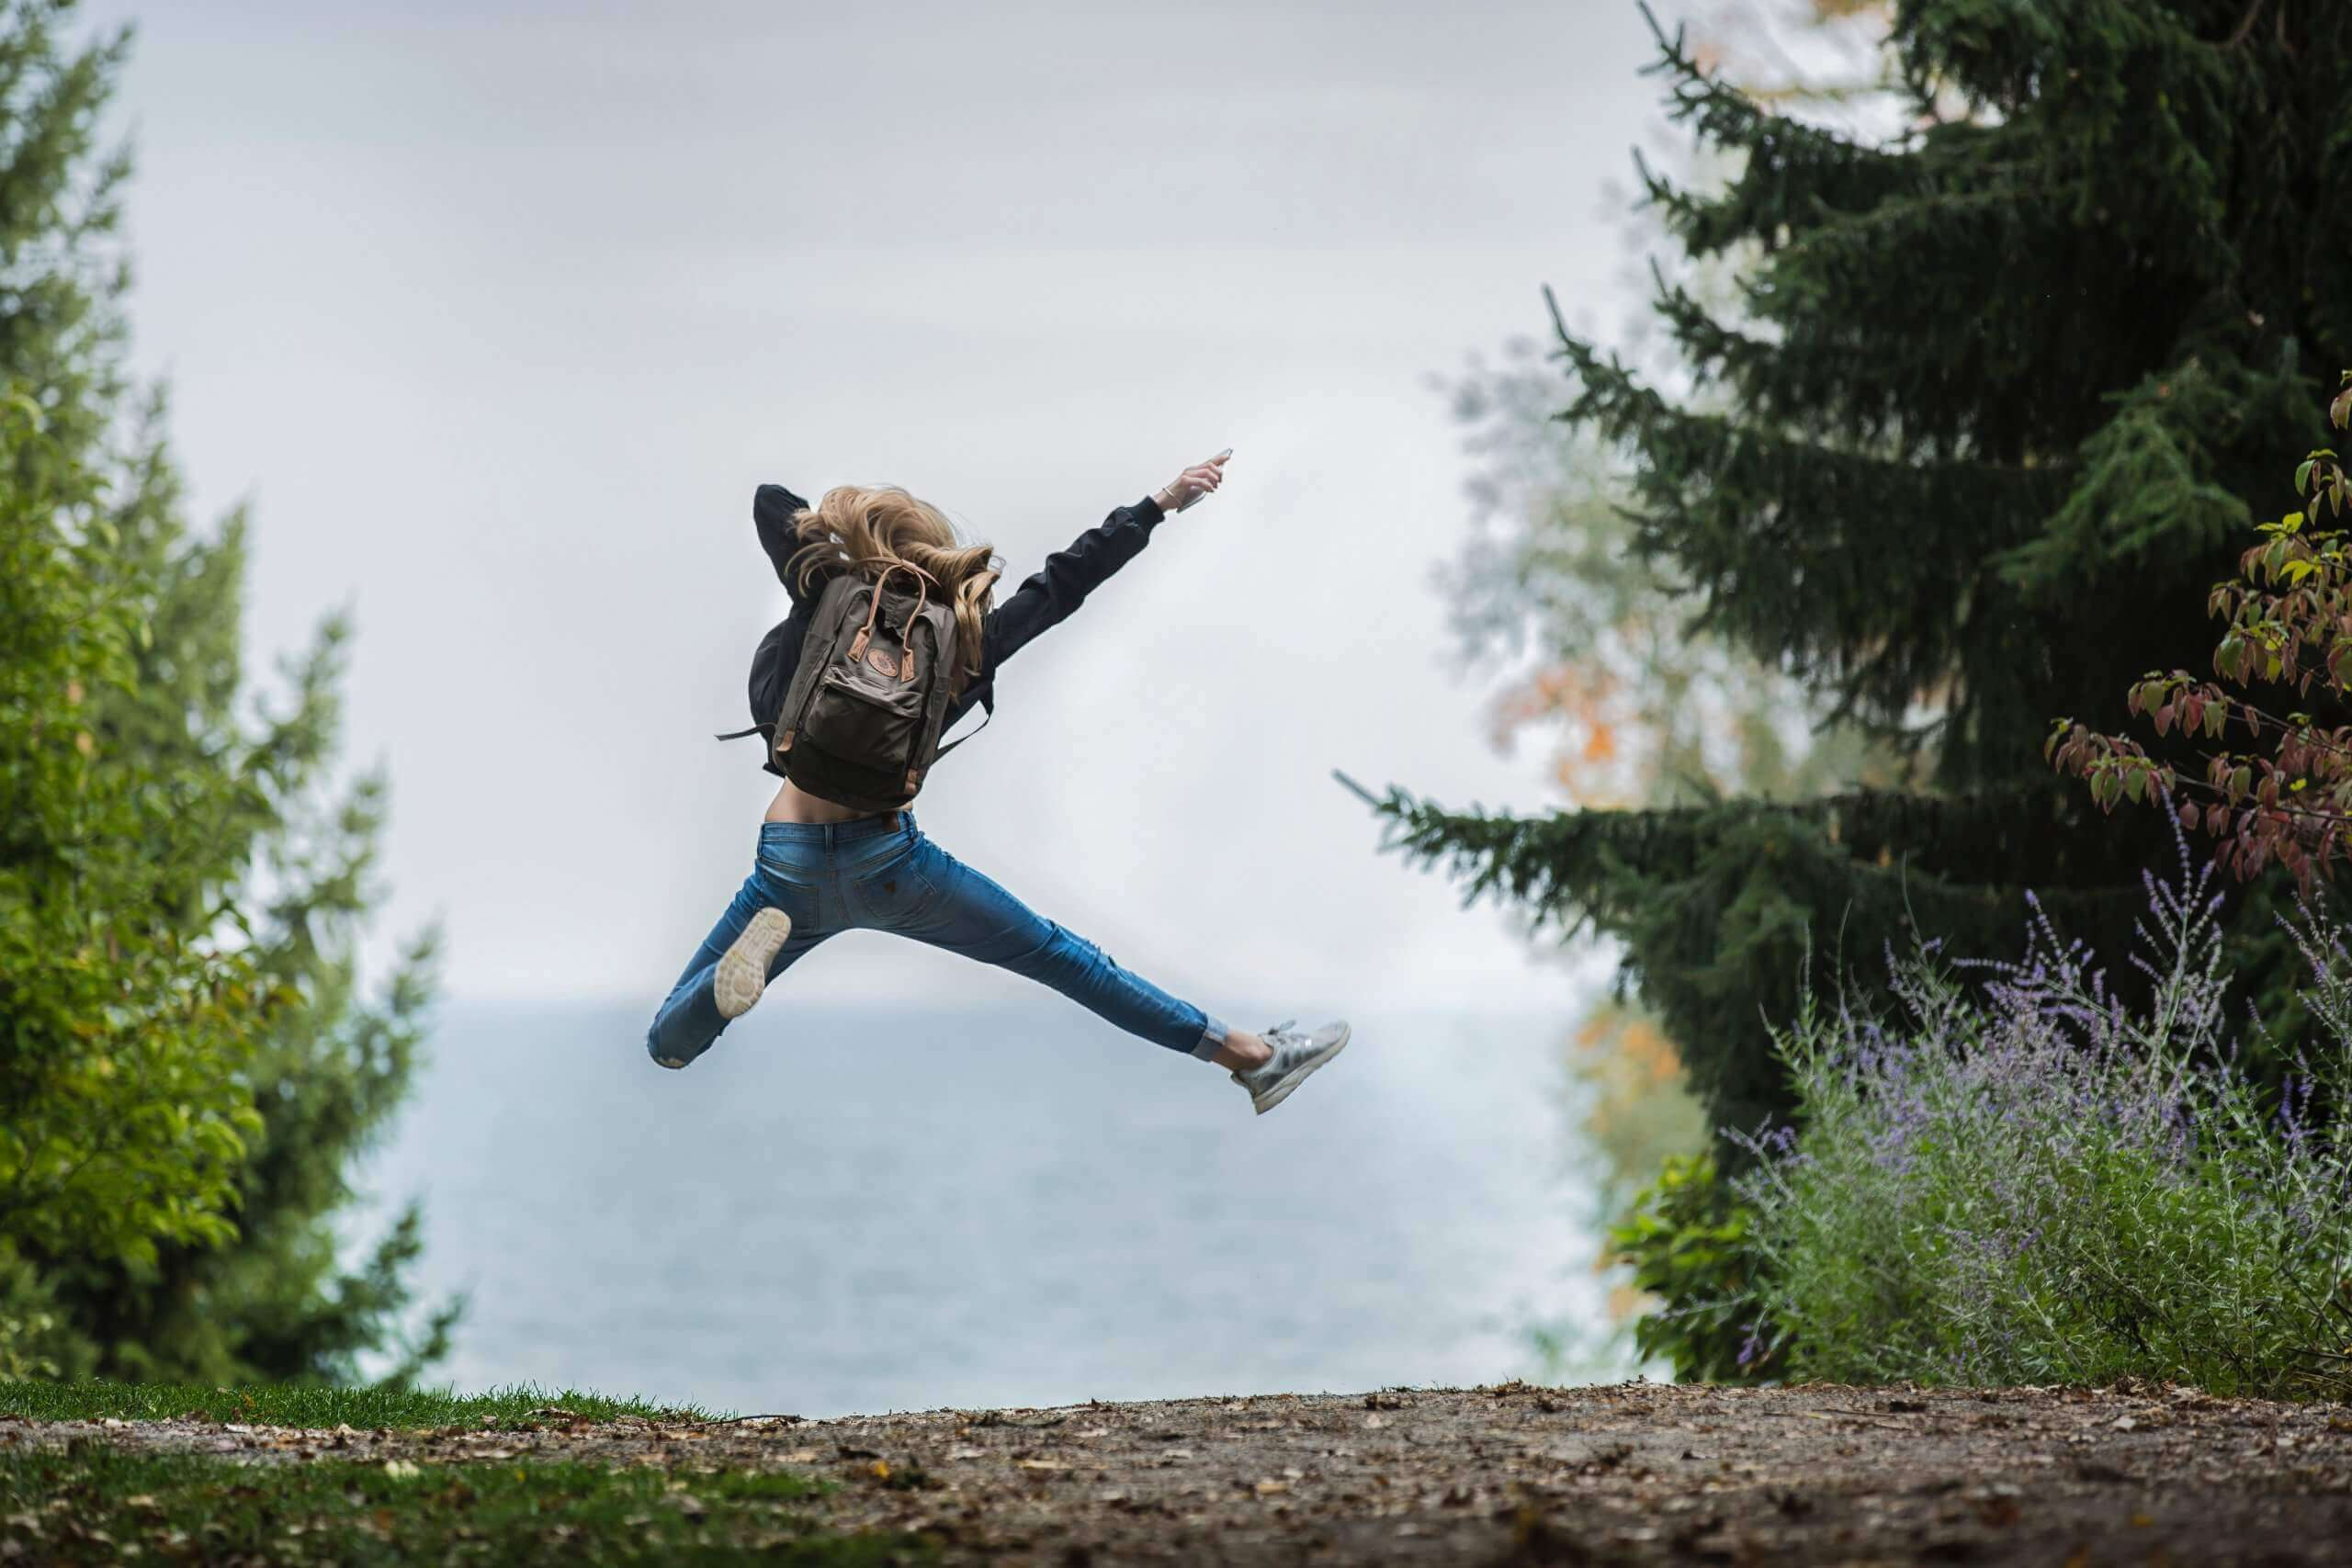 Jumping with Joy   The Mustcard